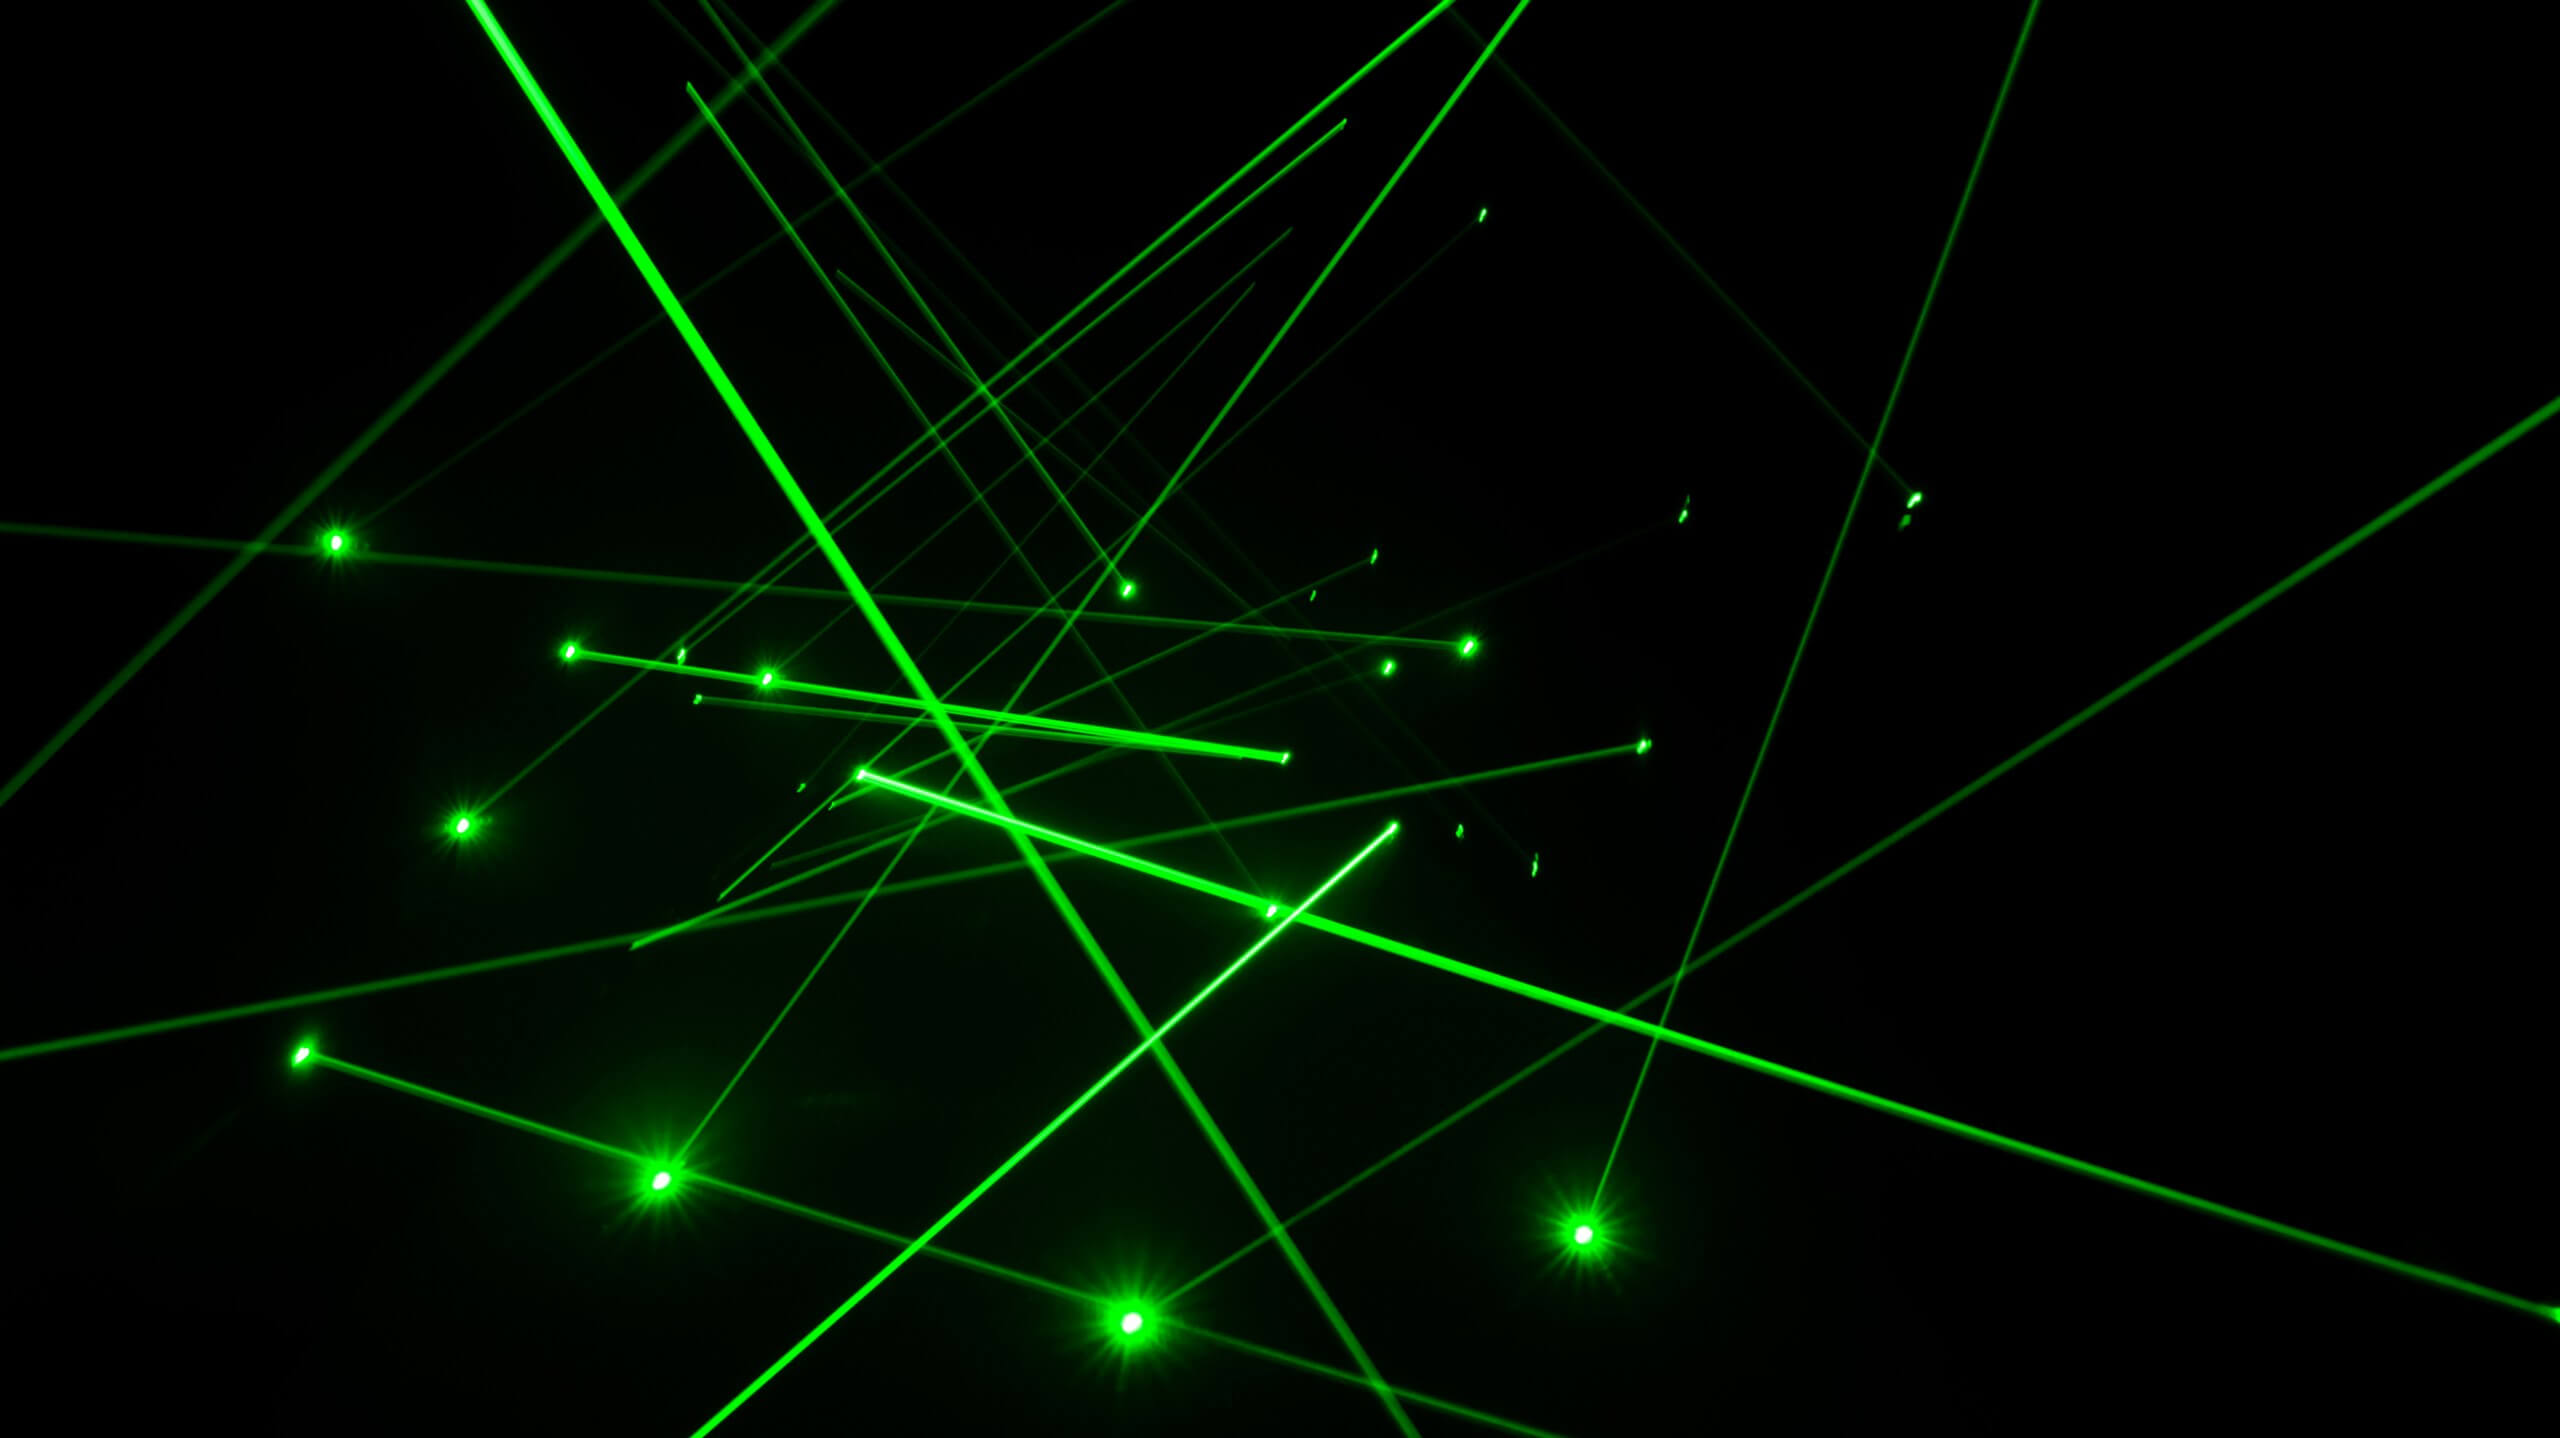 Scientists edge closer to ultra-high-speed Wi-Fi using lasers